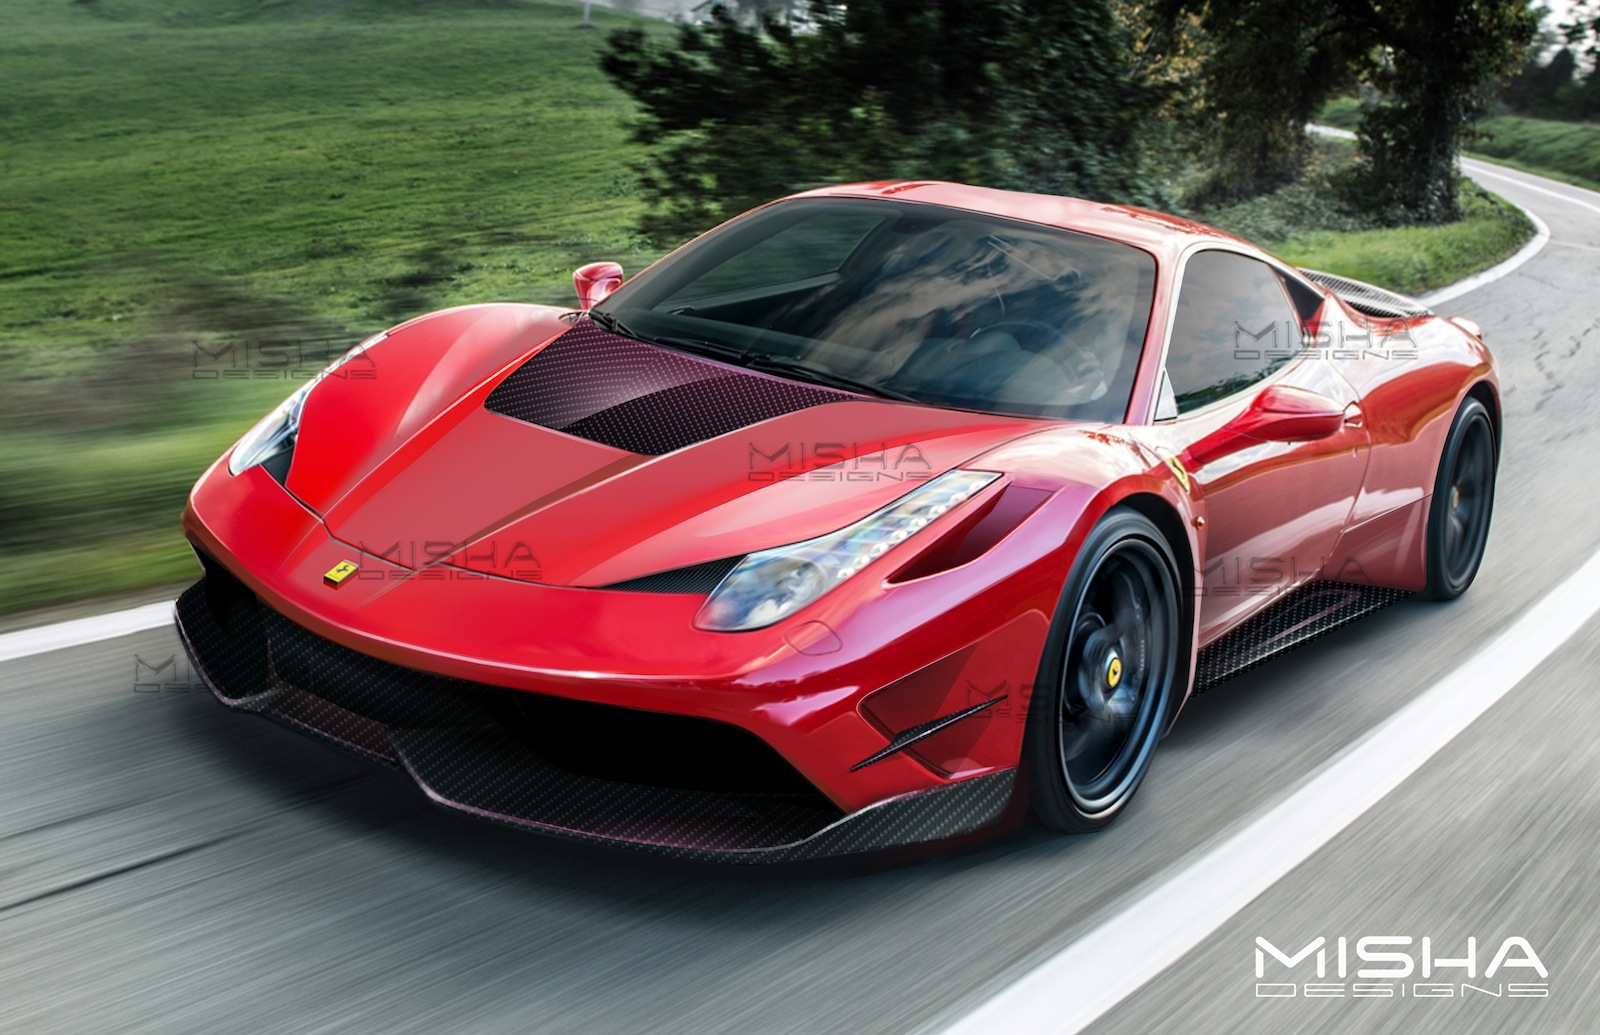 ferrari-458-body-kit-misha-designs-1.jpg